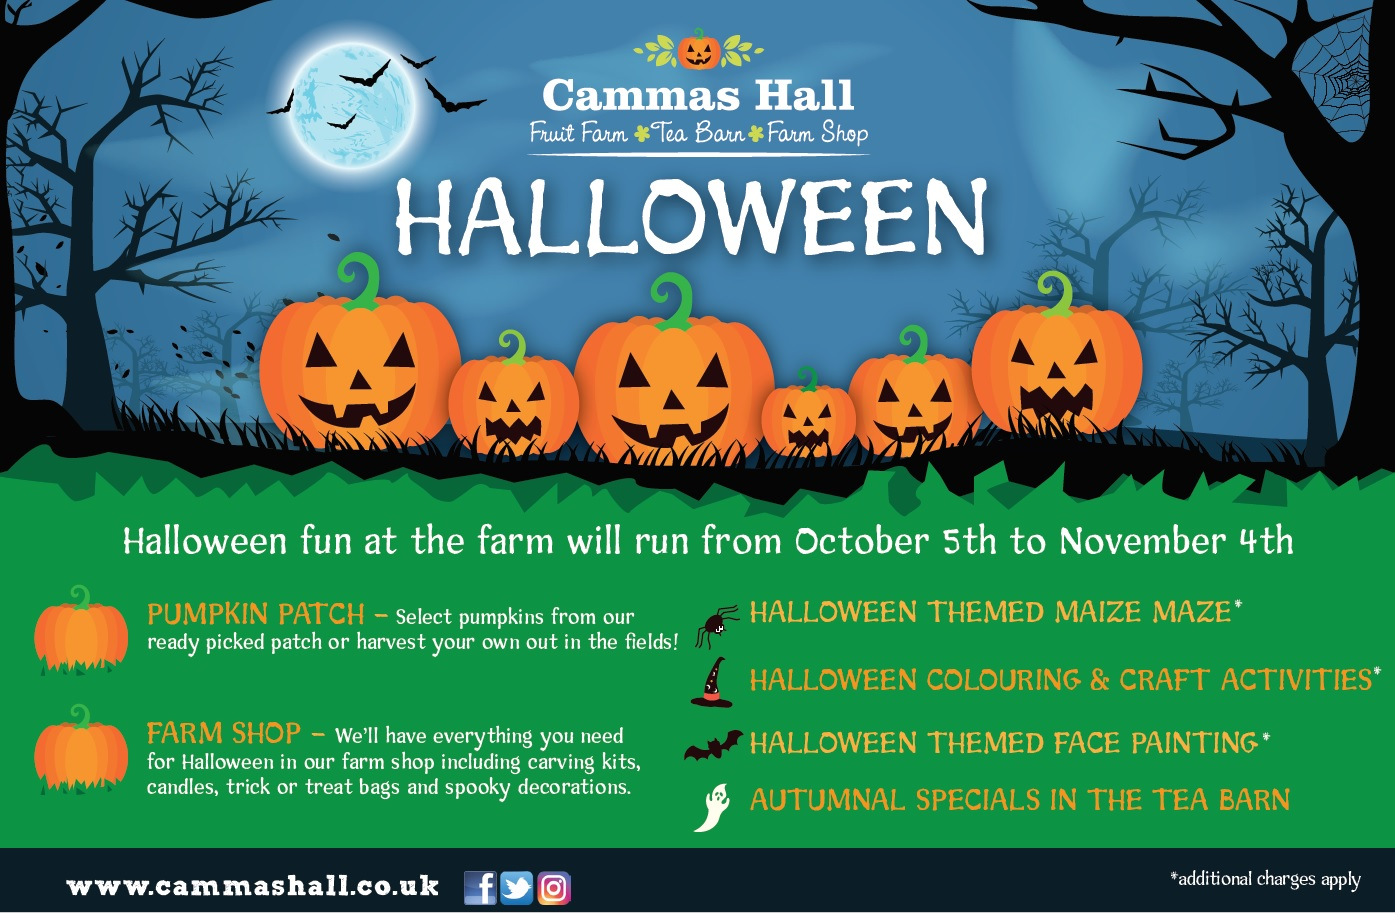 halloween | cammas hall